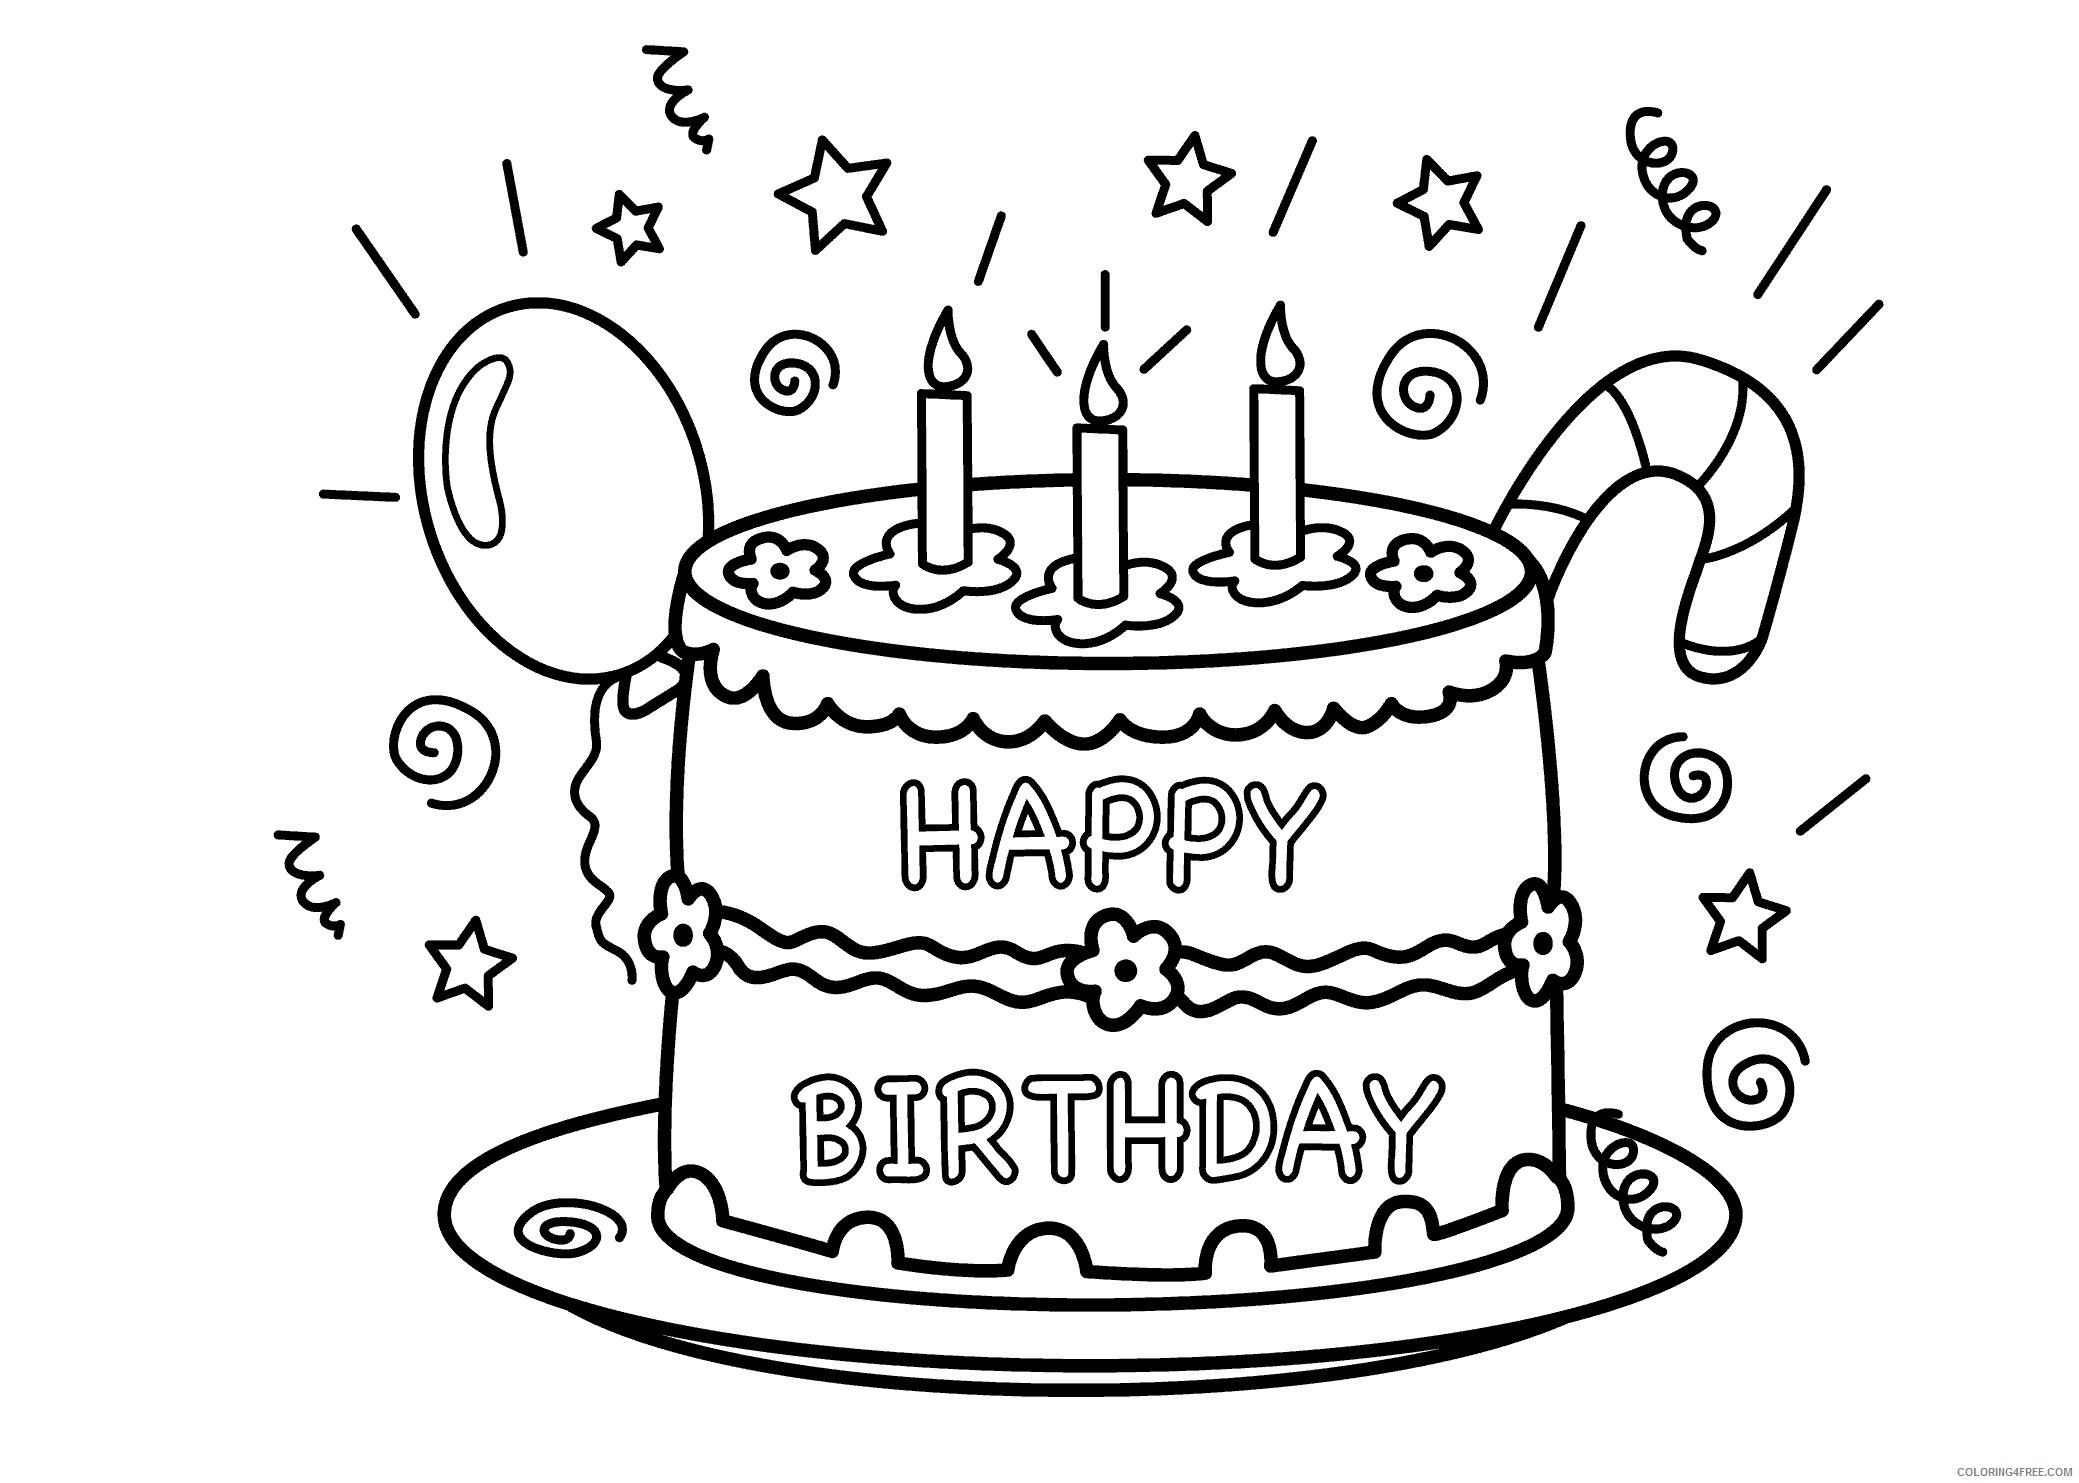 Birthday Cake Coloring Pages Food Birthday Cake Printable 2021 012 Coloring4free Coloring4free Com